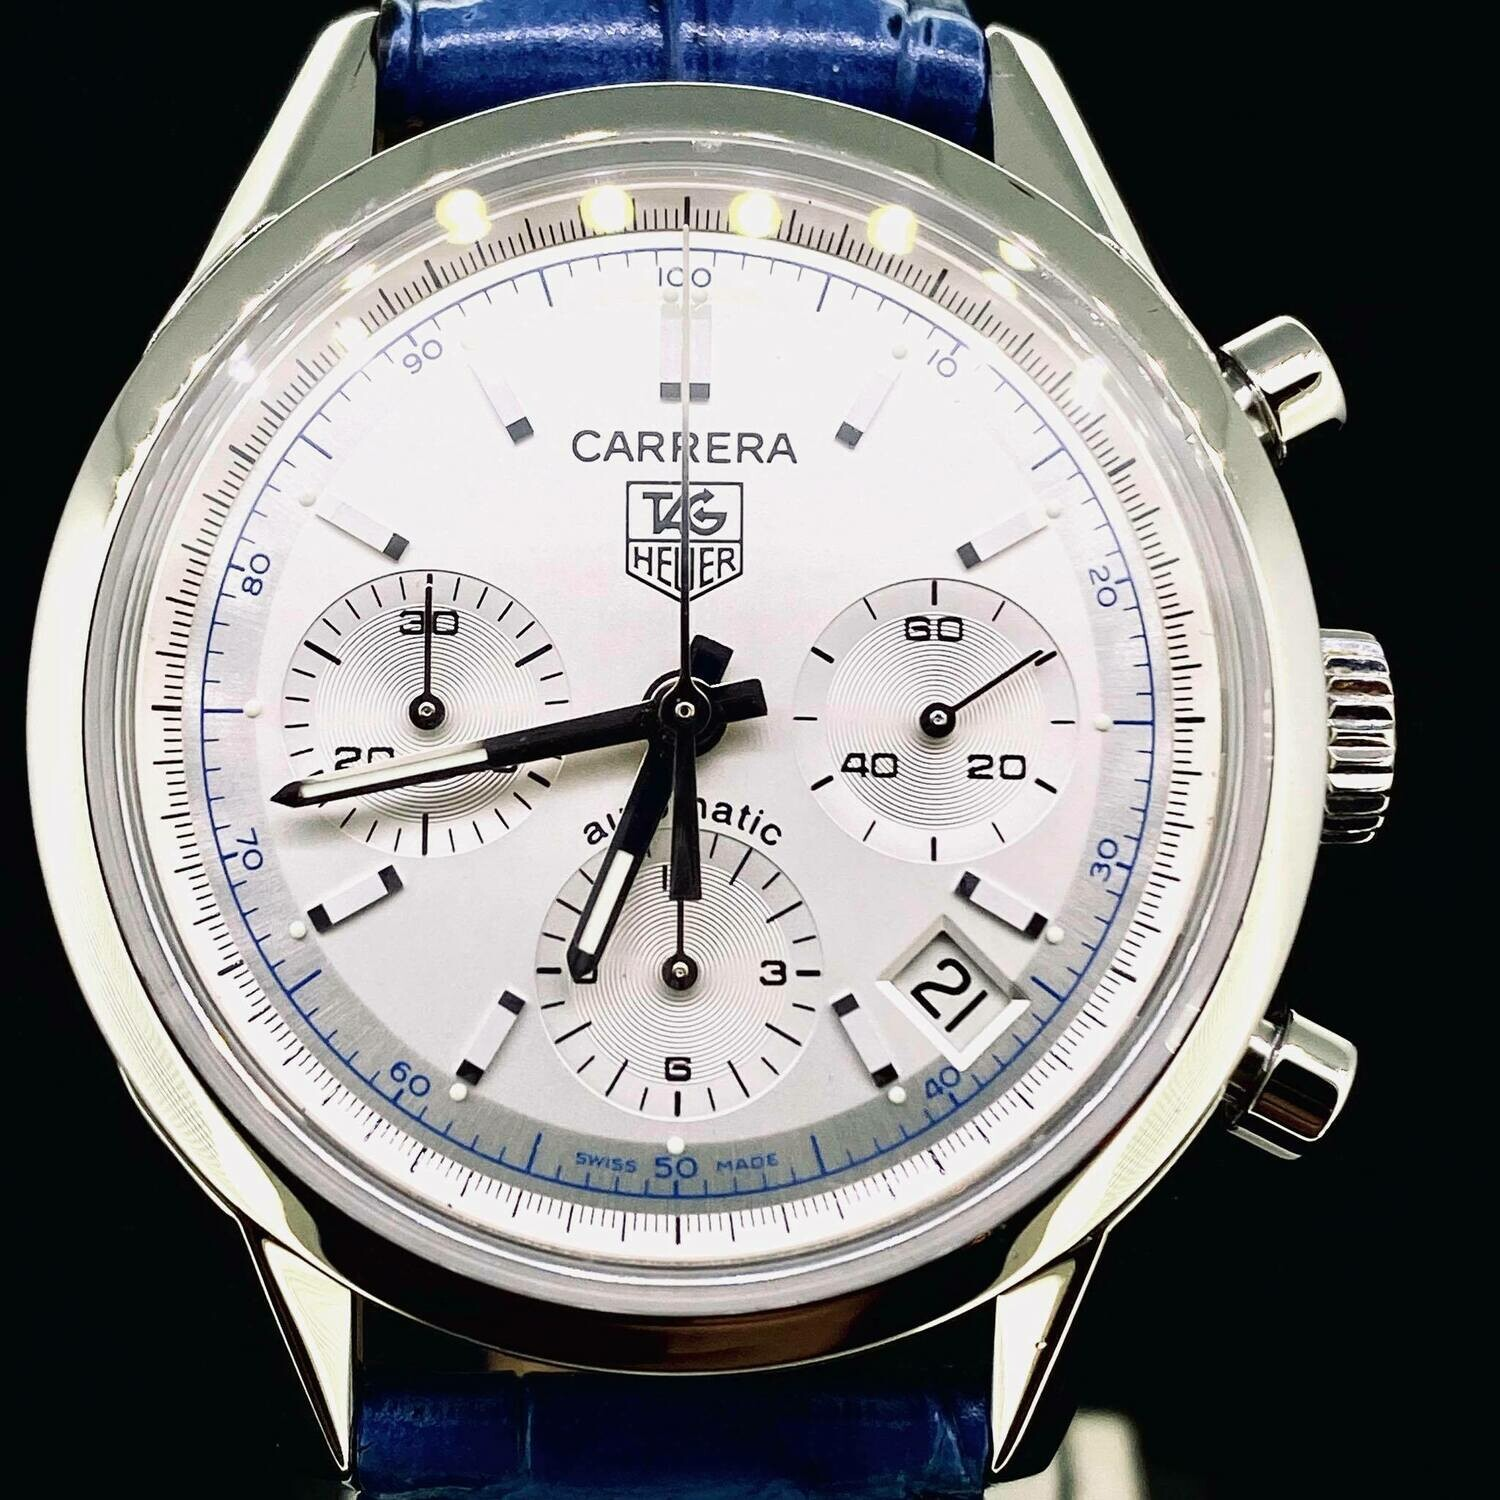 TAG Heuer Carrera Re-Edition Chronograph 39MM Steel Automatic Watch Fullset B&P Very Good Condition